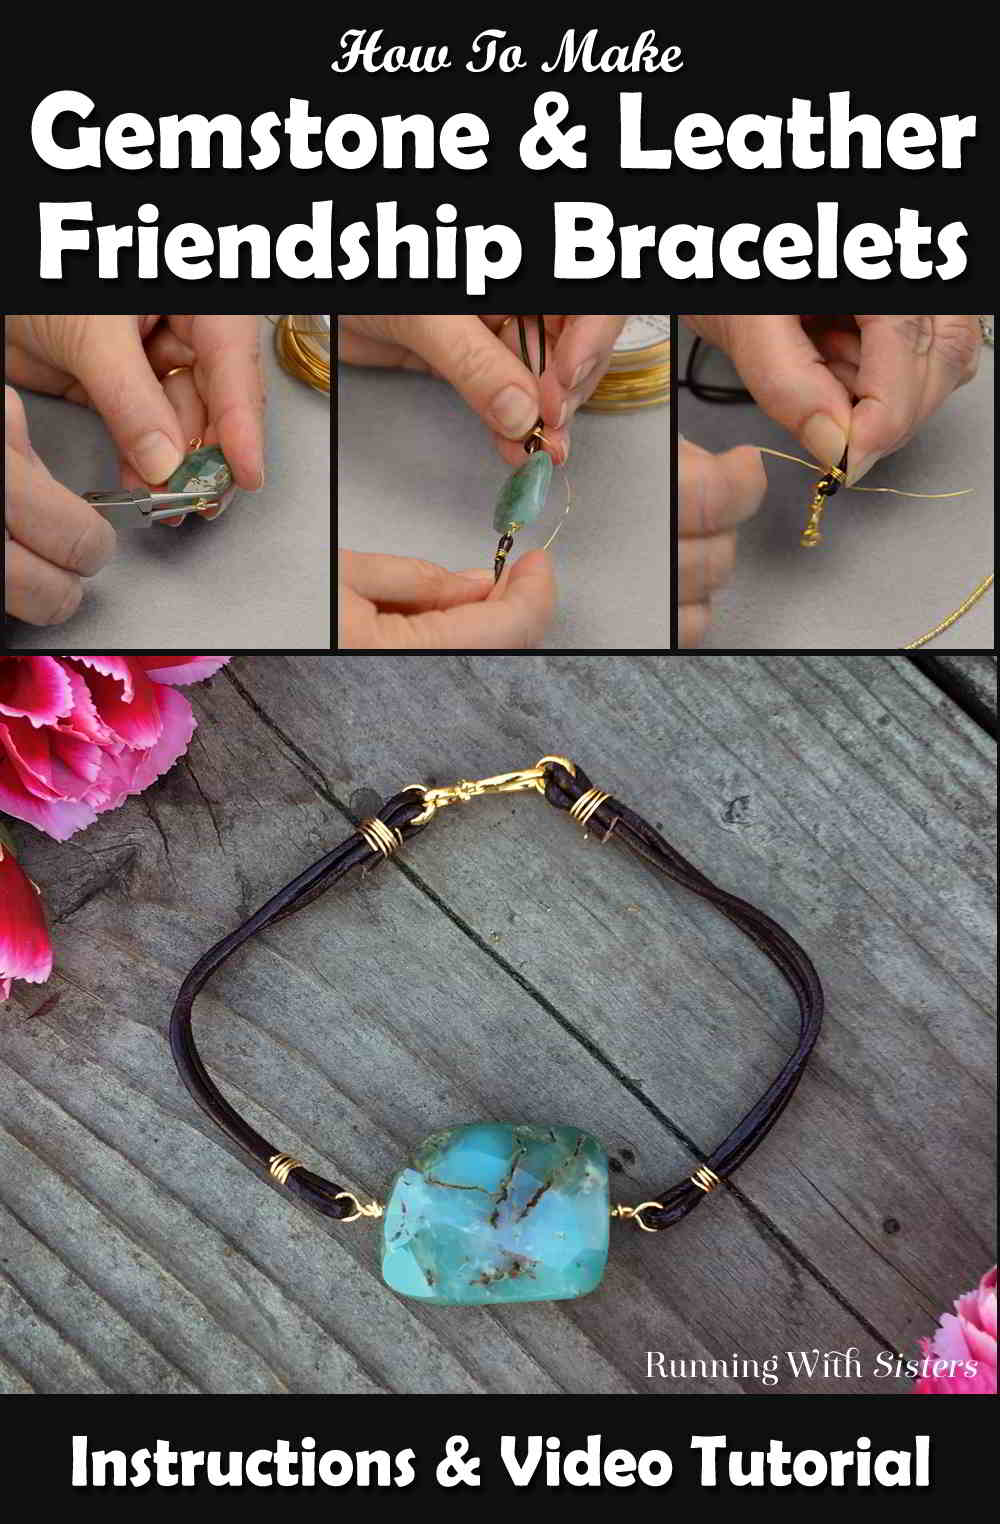 Make a Gemstone Leather Friendship Bracelet for a friend and one for yourself too! We'll show you how in this step by step video. Great for a beginner!